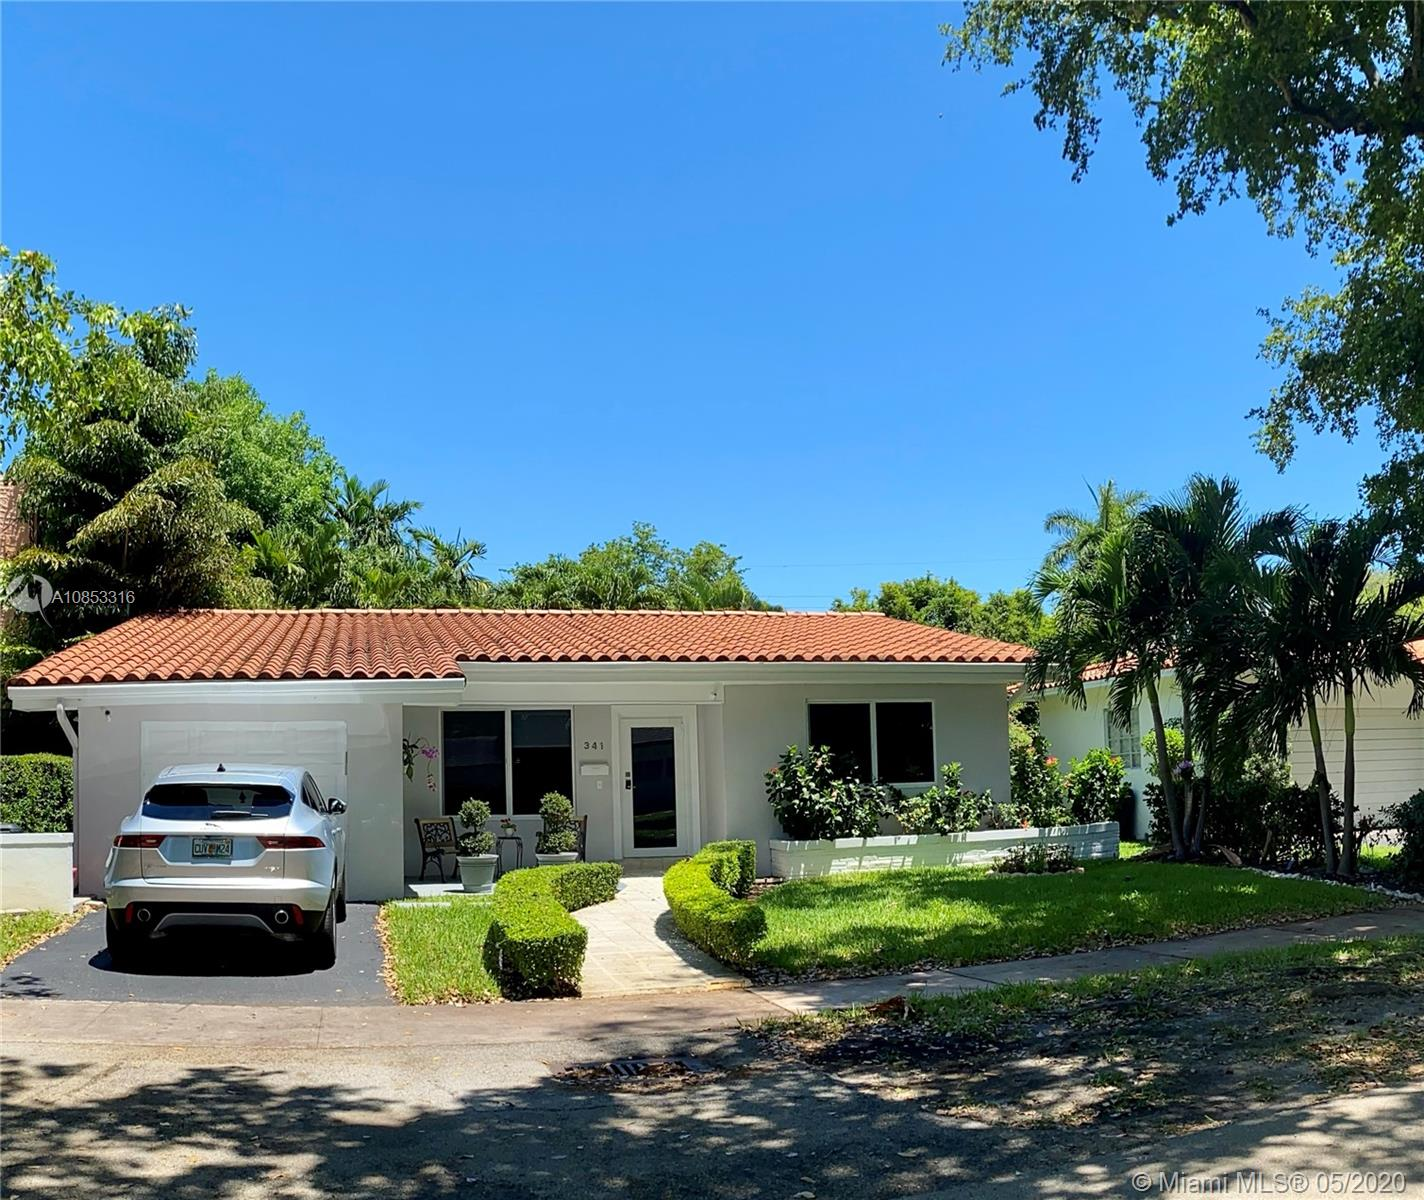 341 Aledo Ave, Coral Gables, Florida 33134, 2 Bedrooms Bedrooms, ,2 BathroomsBathrooms,Residential,For Sale,341 Aledo Ave,A10853316